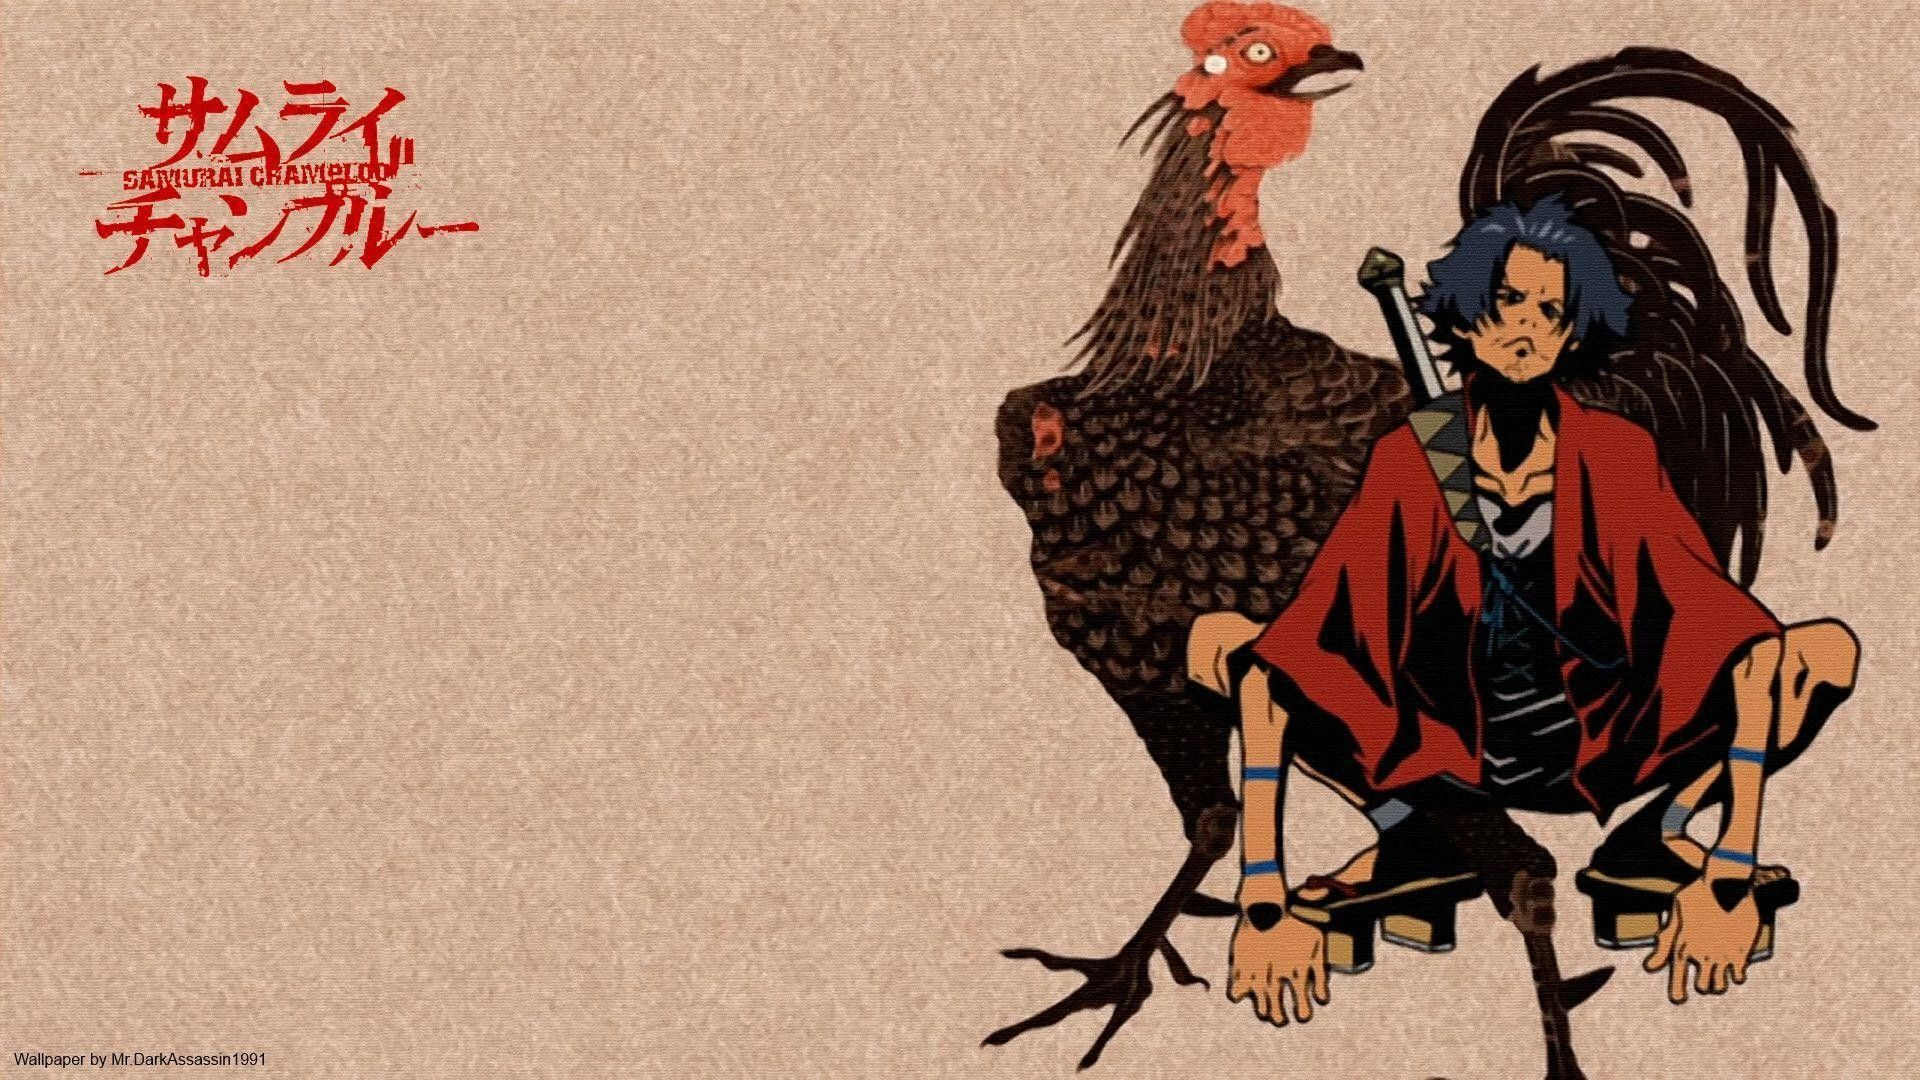 Mugen Samurai Champloo Wallpapers Top Free Mugen Samurai